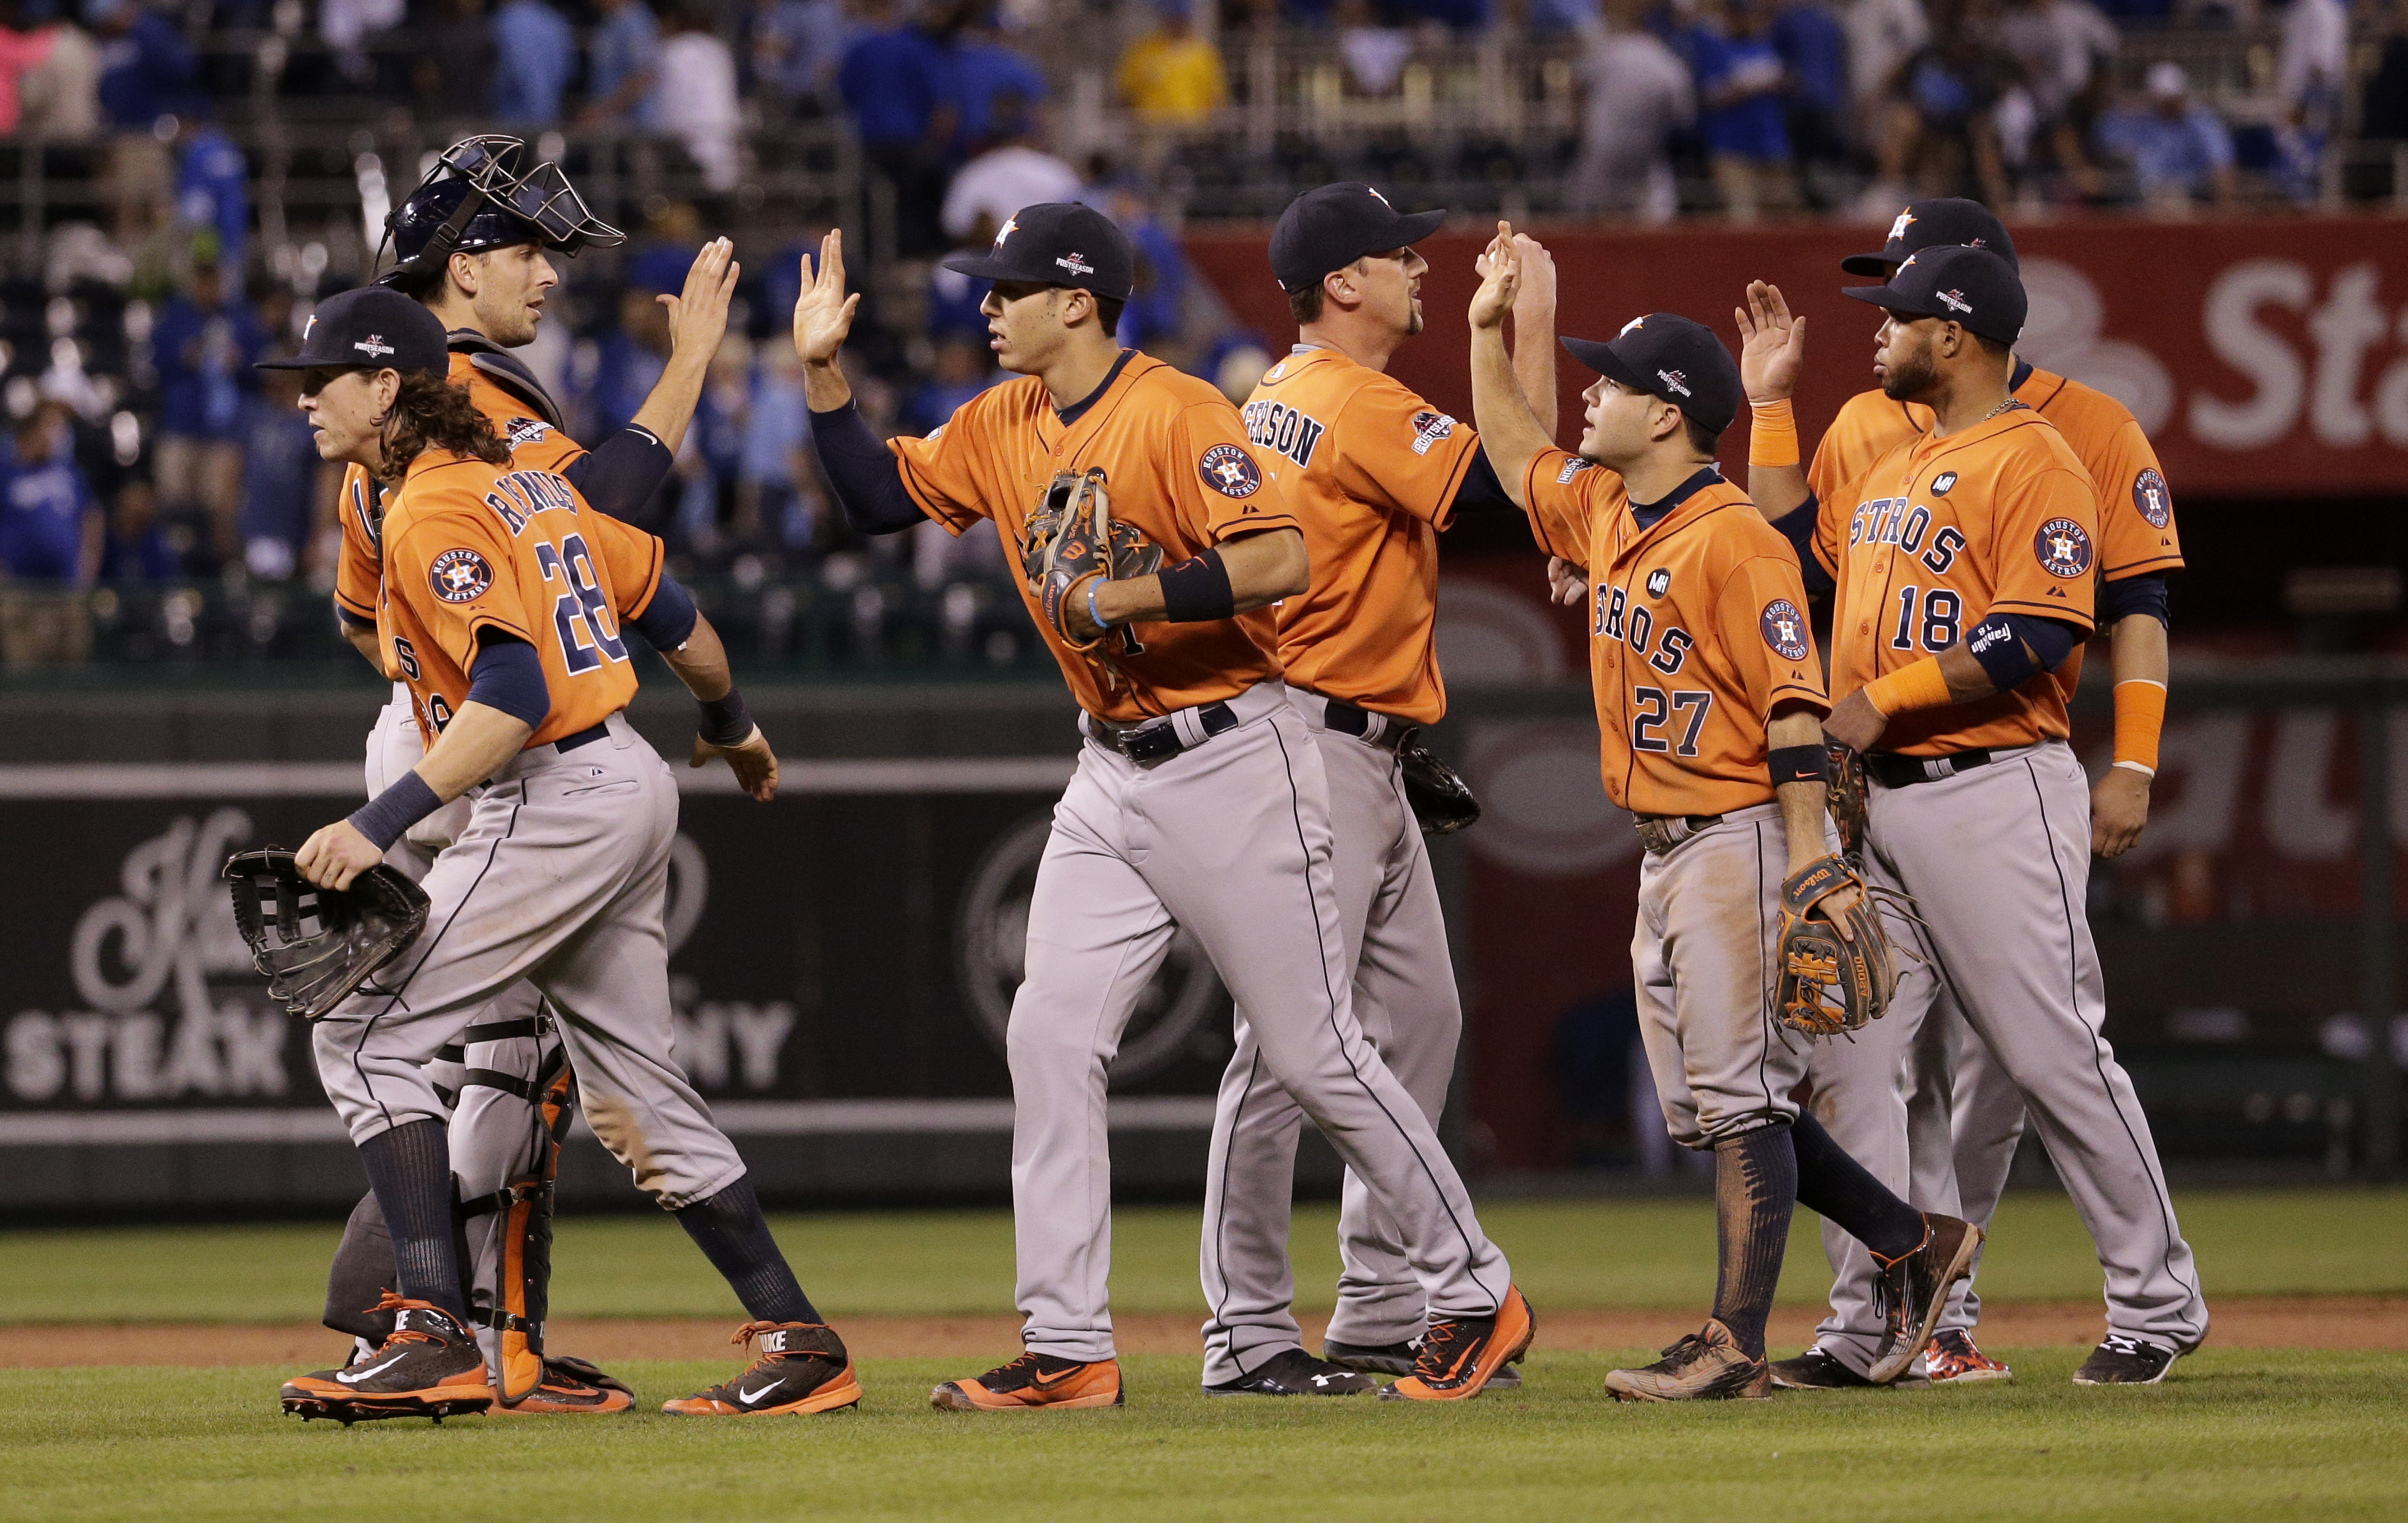 Houston Astros players celebrate after their victory over the Kansas City Royals in Game 1 of baseball's American League Division Series, Thursday, Oct. 8, 2015, in Kansas City, Mo. (AP Photo/Charlie Riedel)